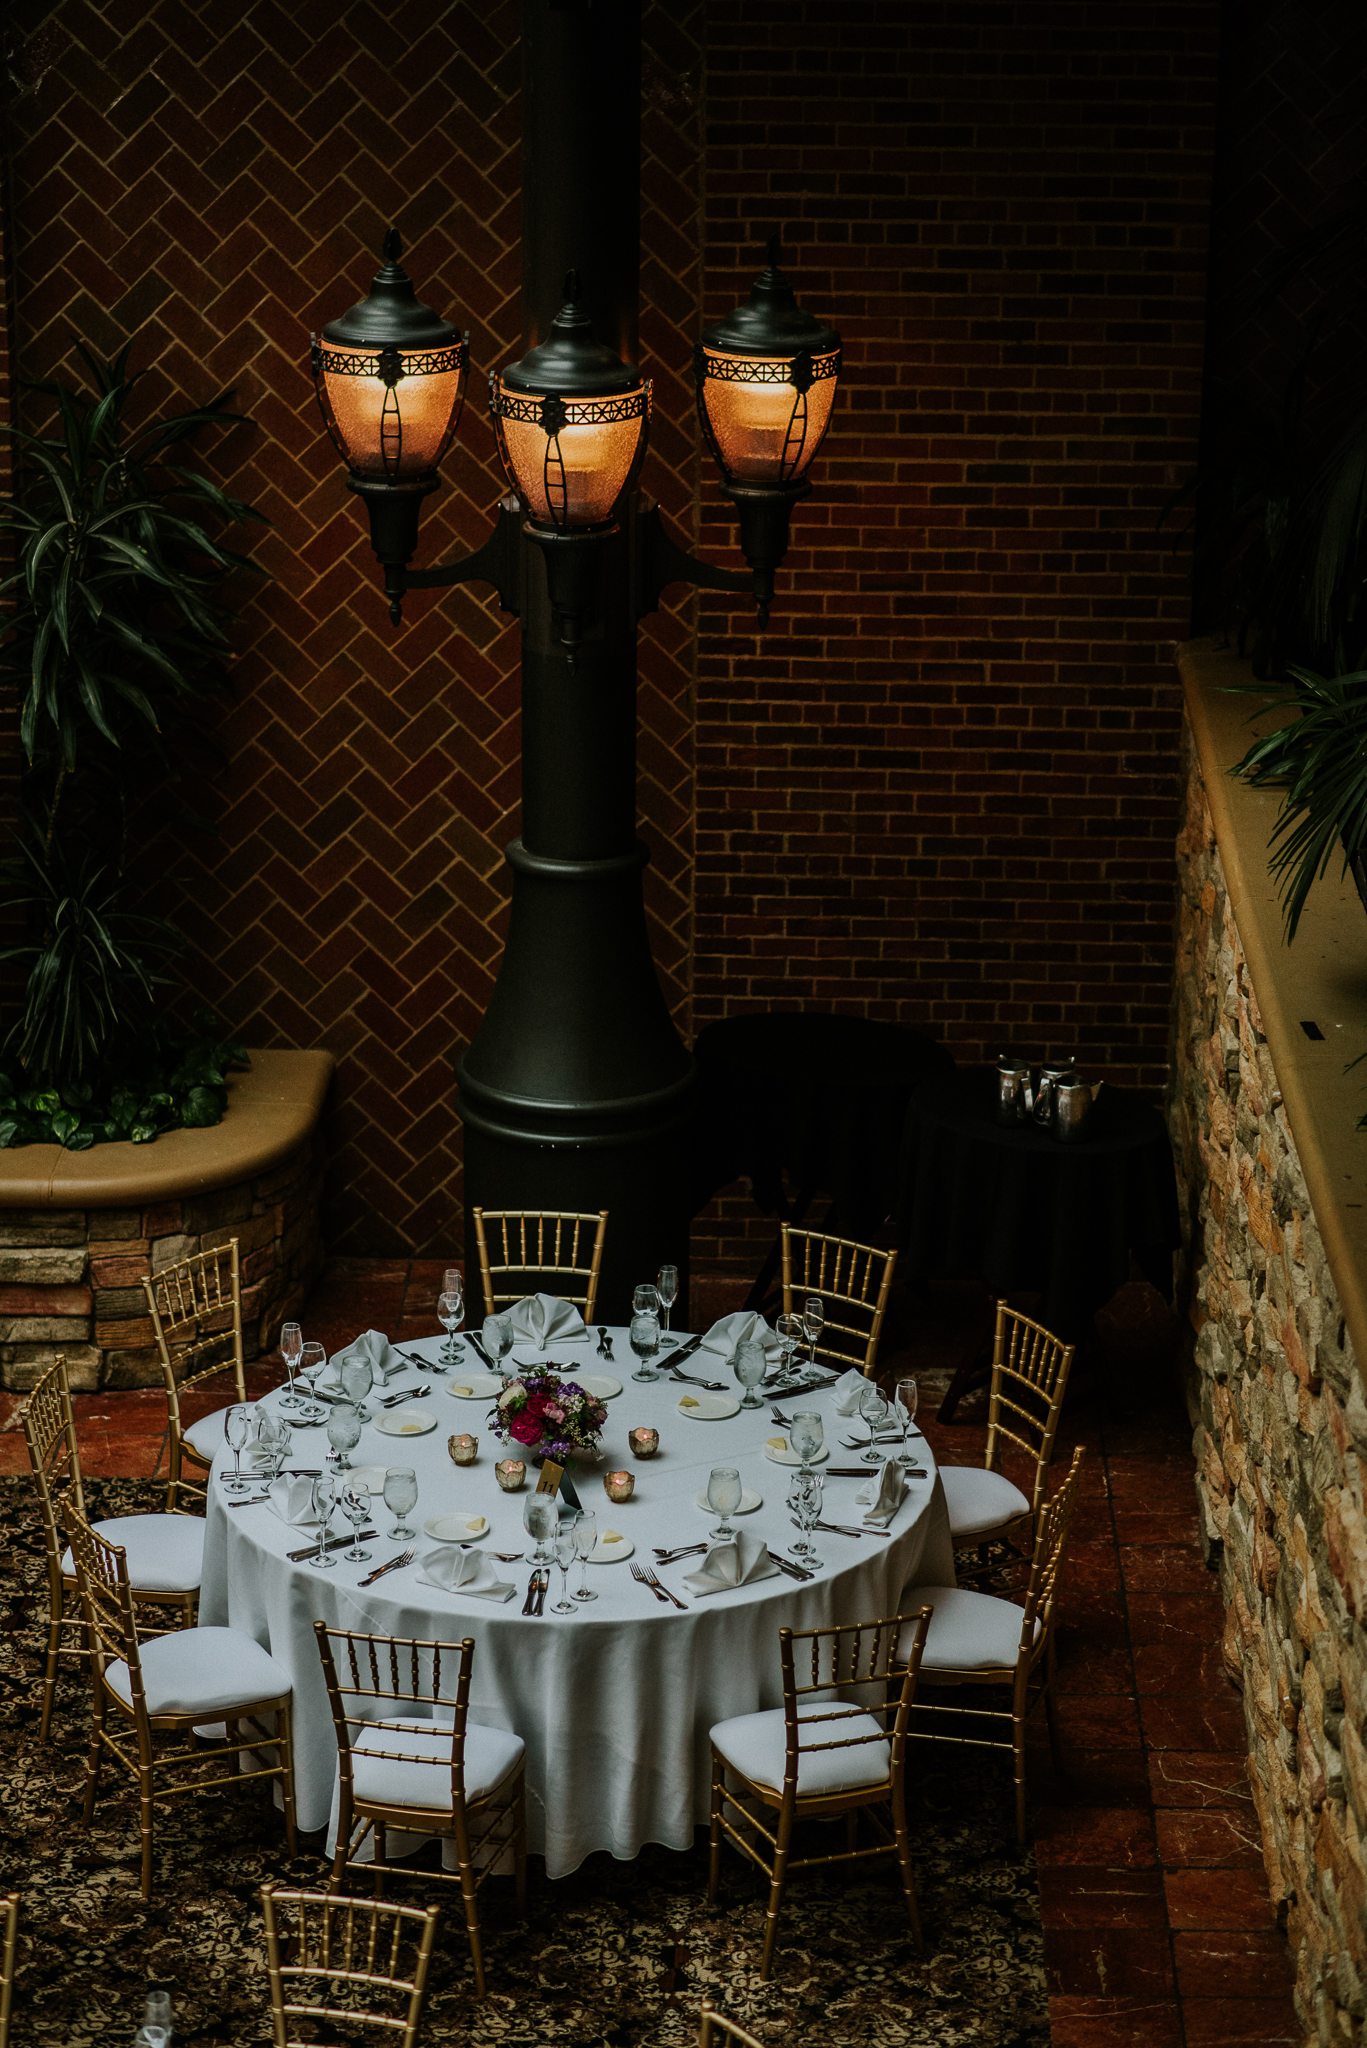 The Inn at St. John's   Plymouth, MI   Miss Lyss Photography   www.misslyssphotography.com